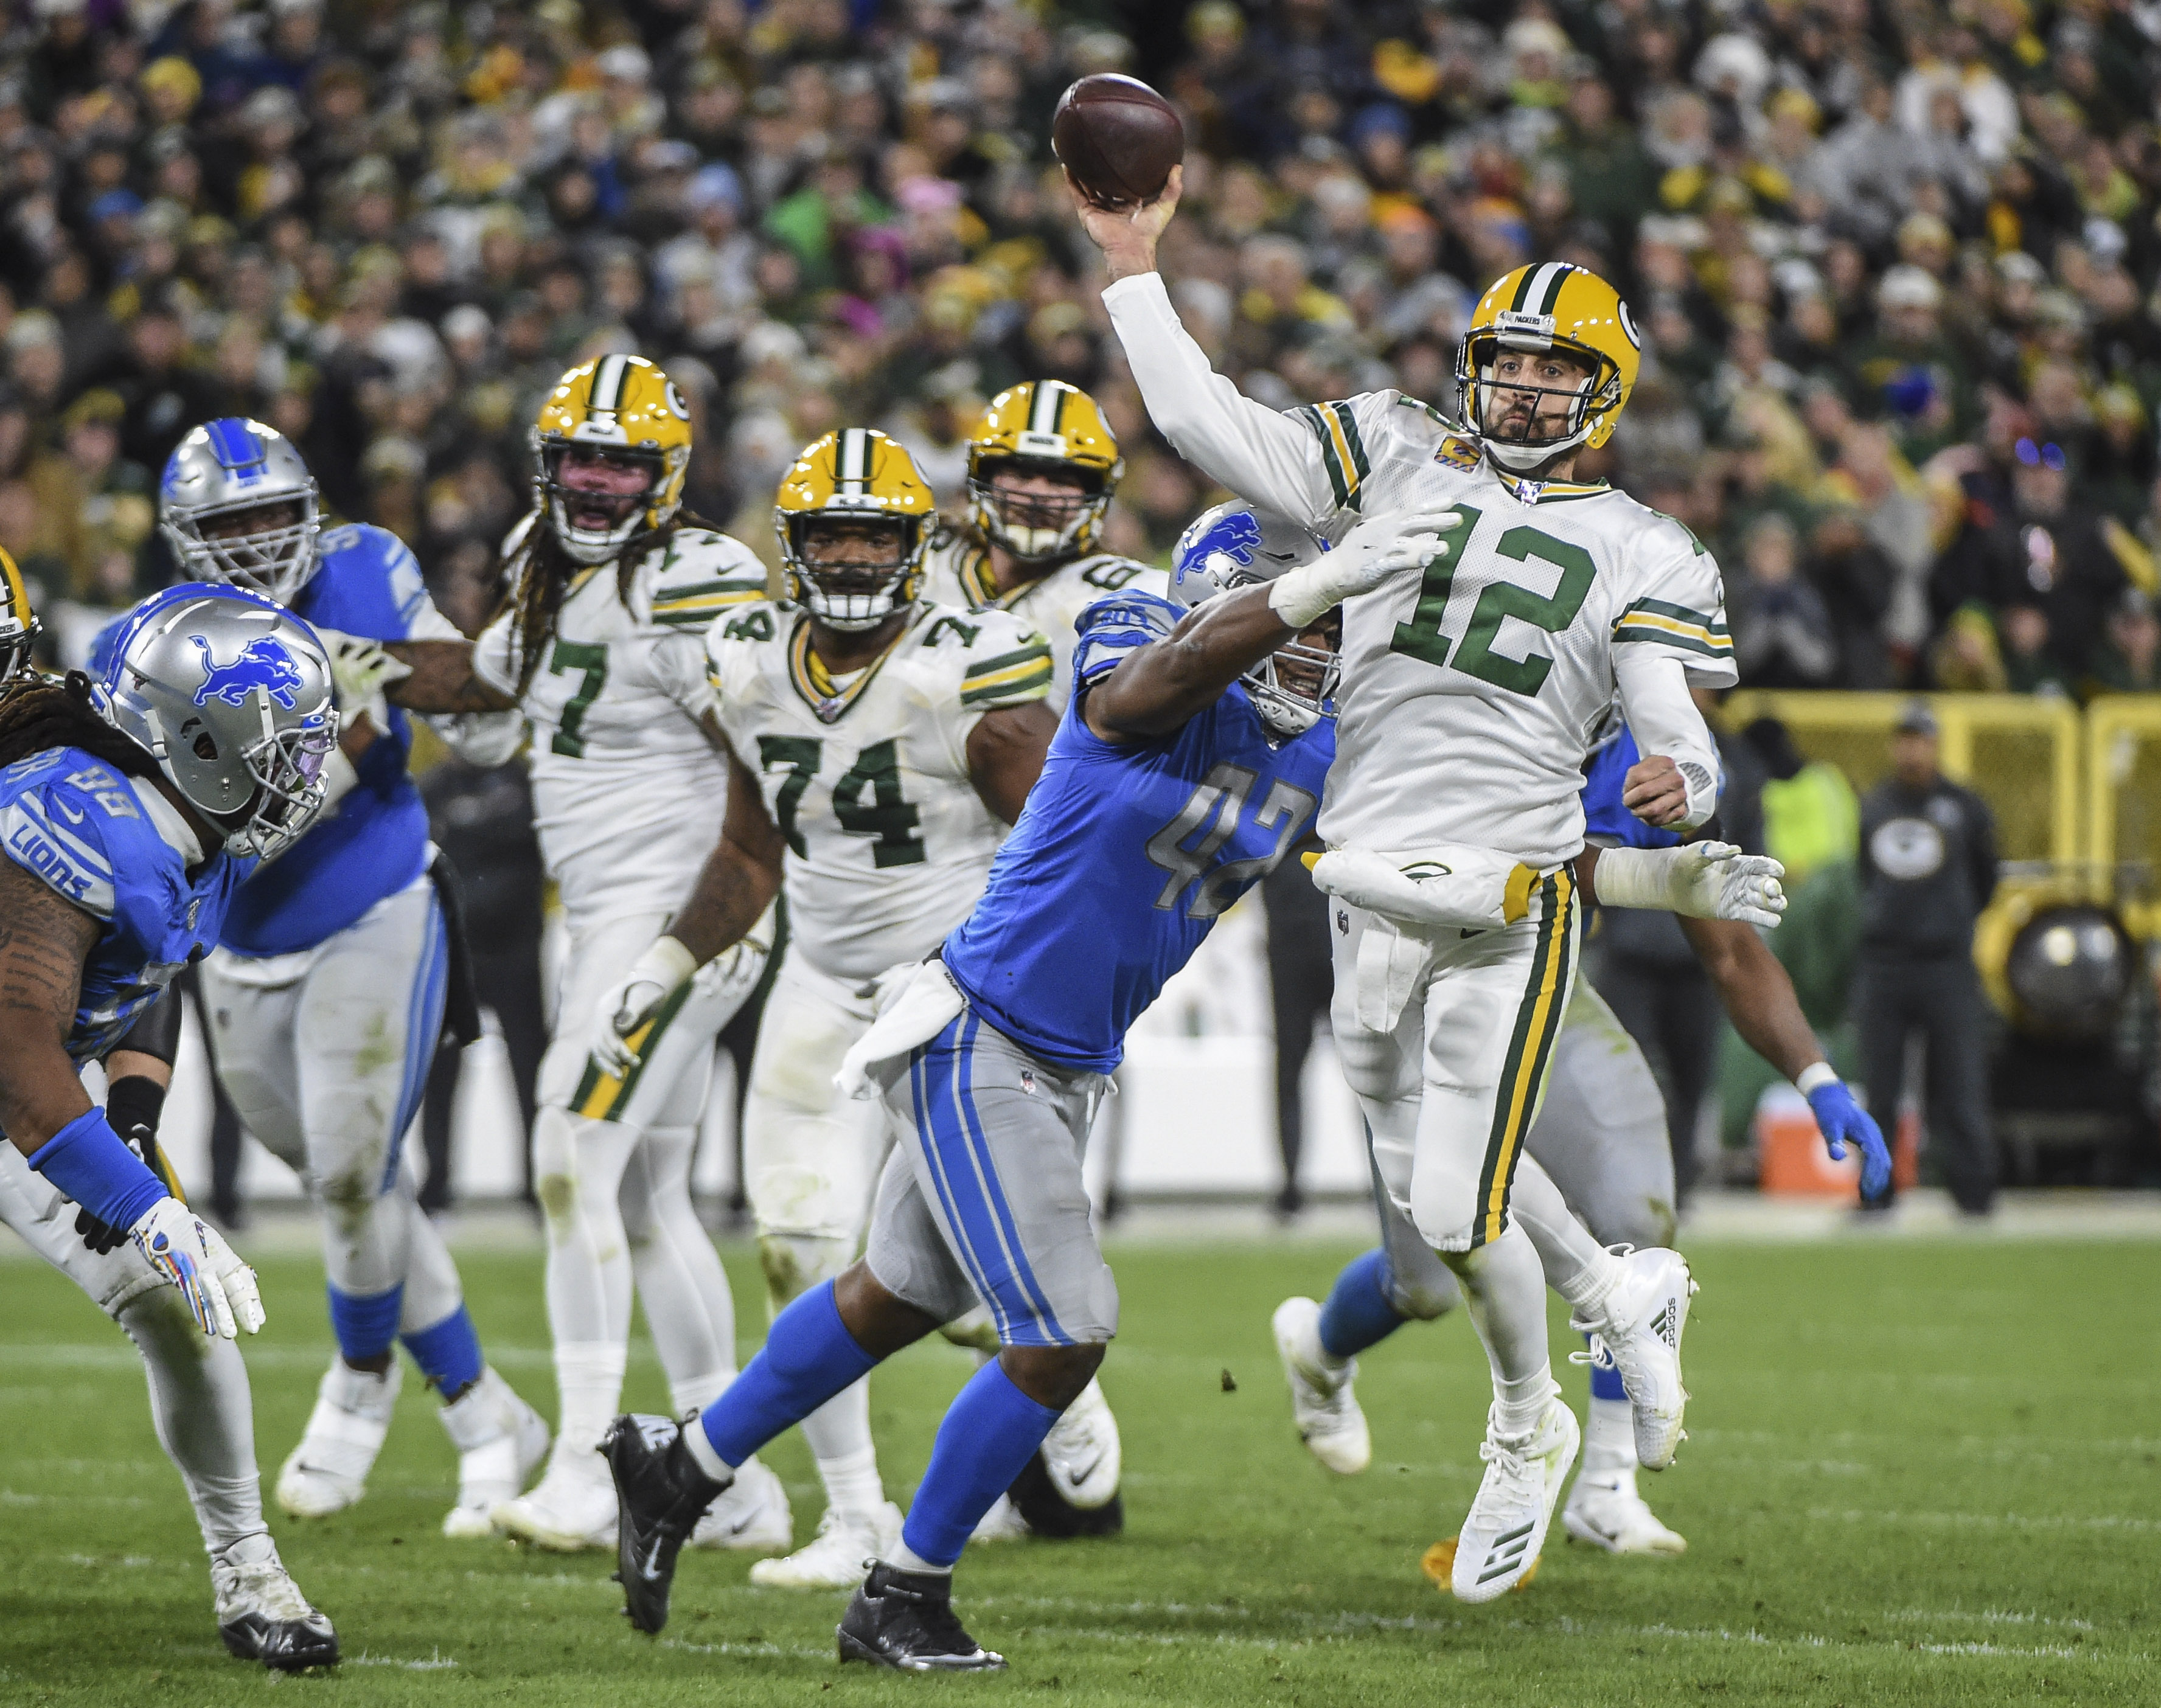 Green Bay Packers quarterback Aaron Rodgers throws a pass while under pressure from Detroit Lions linebacker Devon Kennard in the fourth quarter at Lambeau Field.